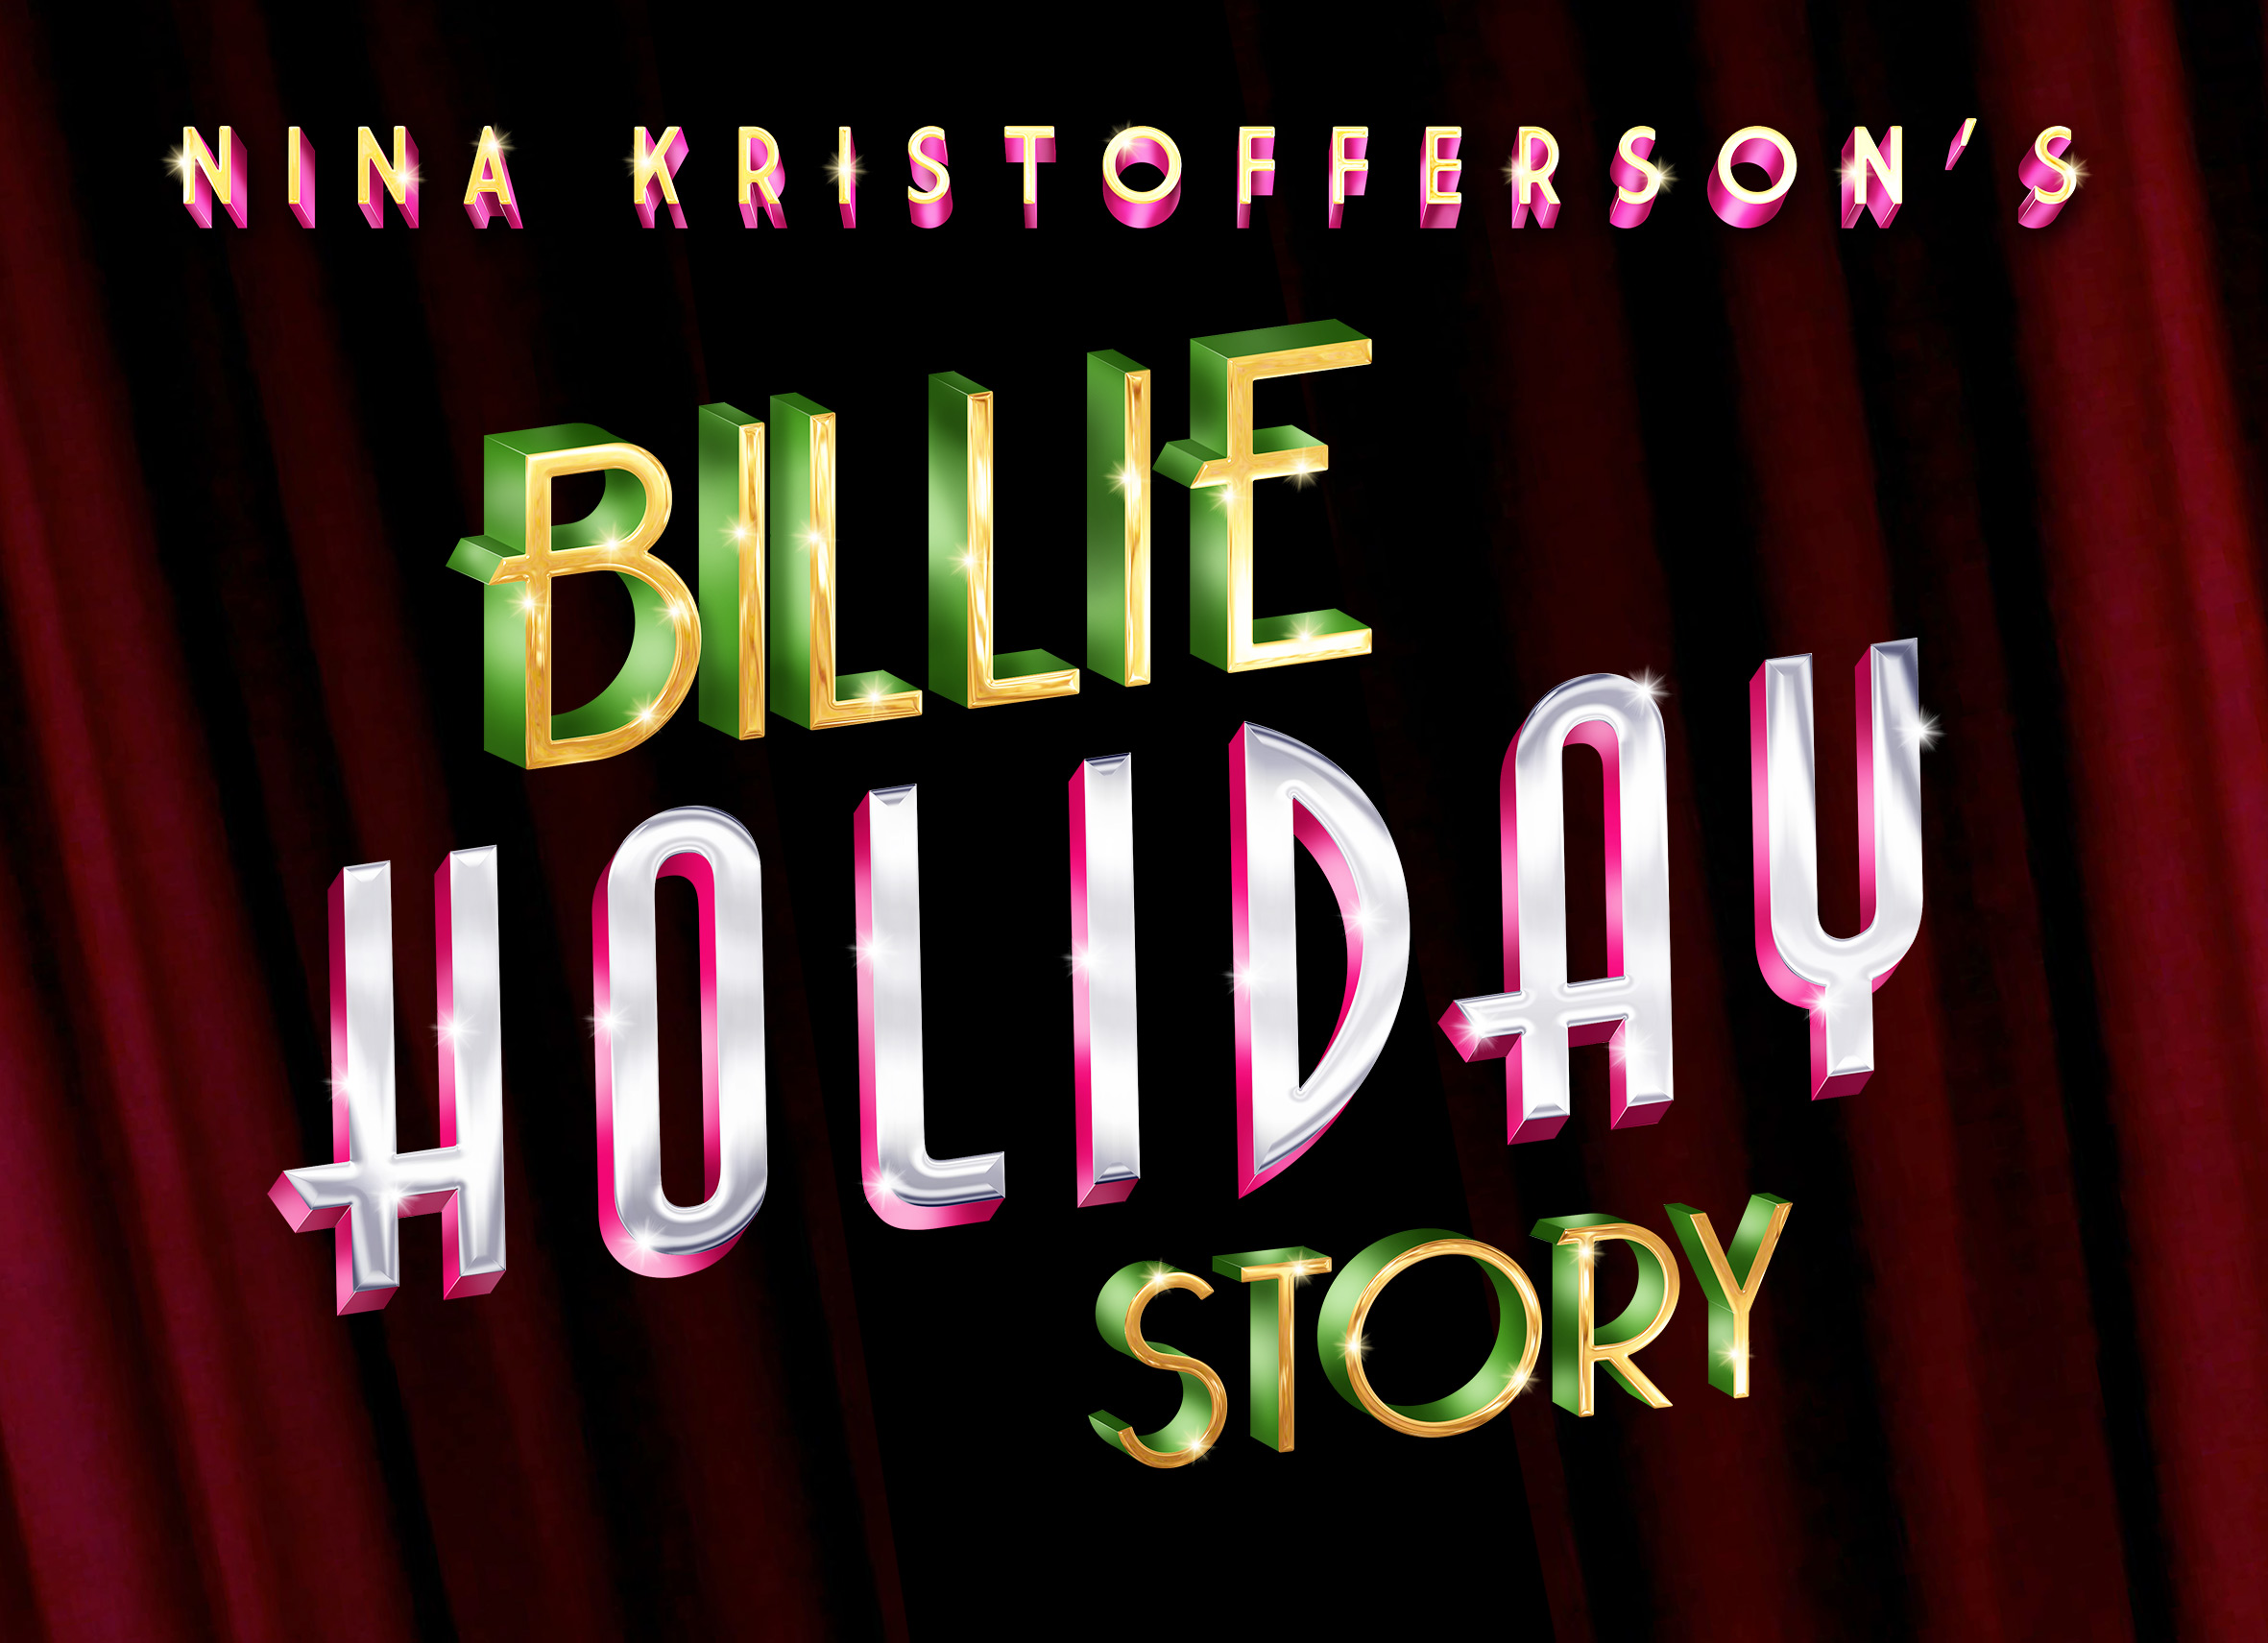 Billie Holiday Story title treatment